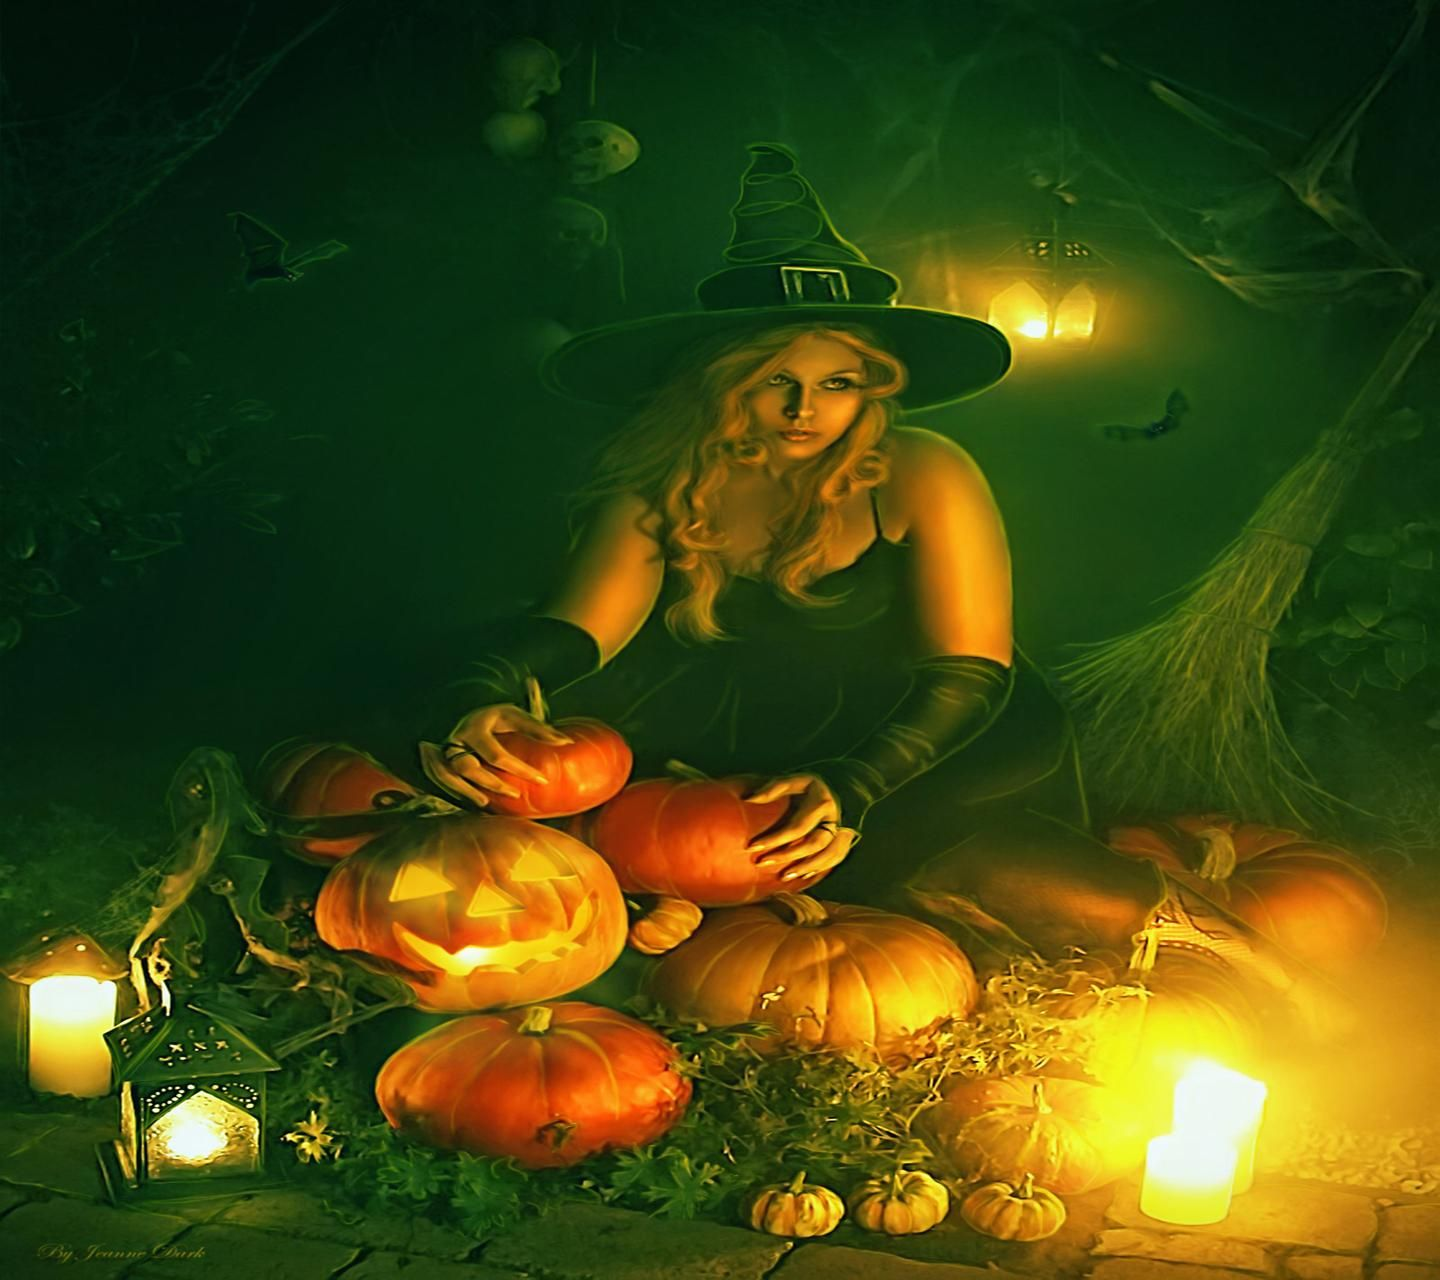 Download Halloween Witch Wallpaper By Venus 2c Free On Zedge Now Browse Millions Of Popular Halloween Wallpa Halloween Digital Art Witch Wallpaper Witch